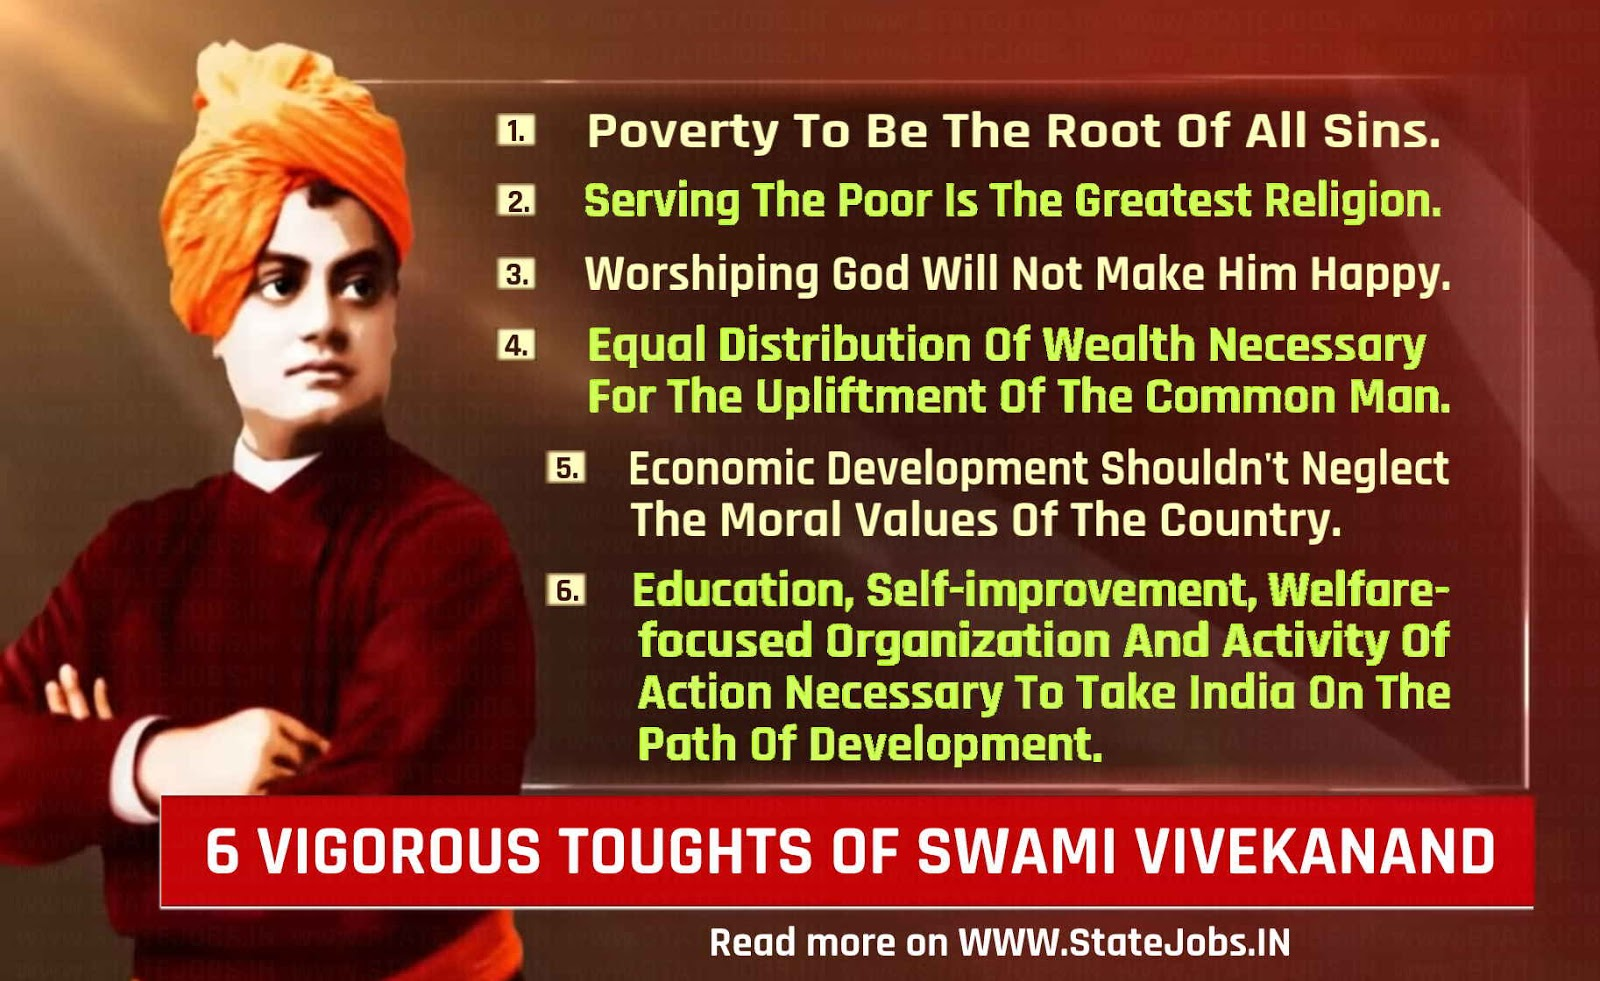 6 vigorous thoughts of Swami Vivekanand on the Religion, God and his Country